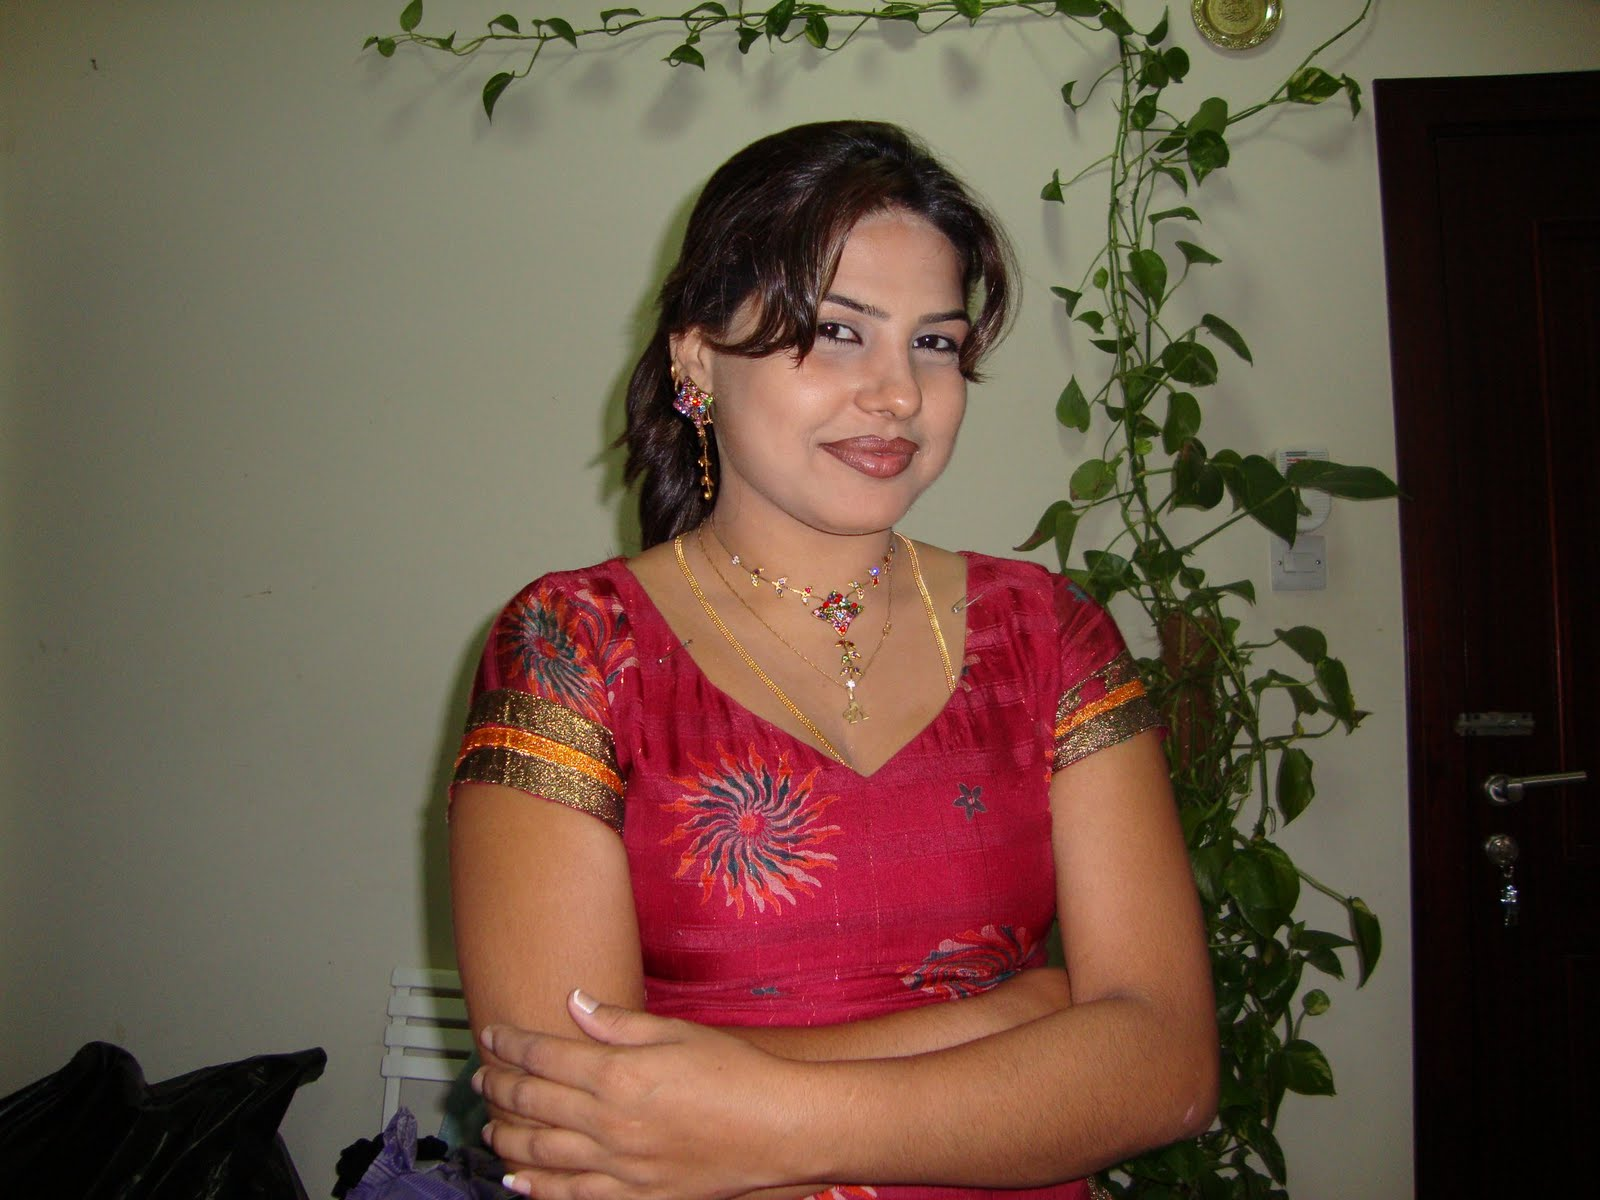 Hot aunty photos women dislike